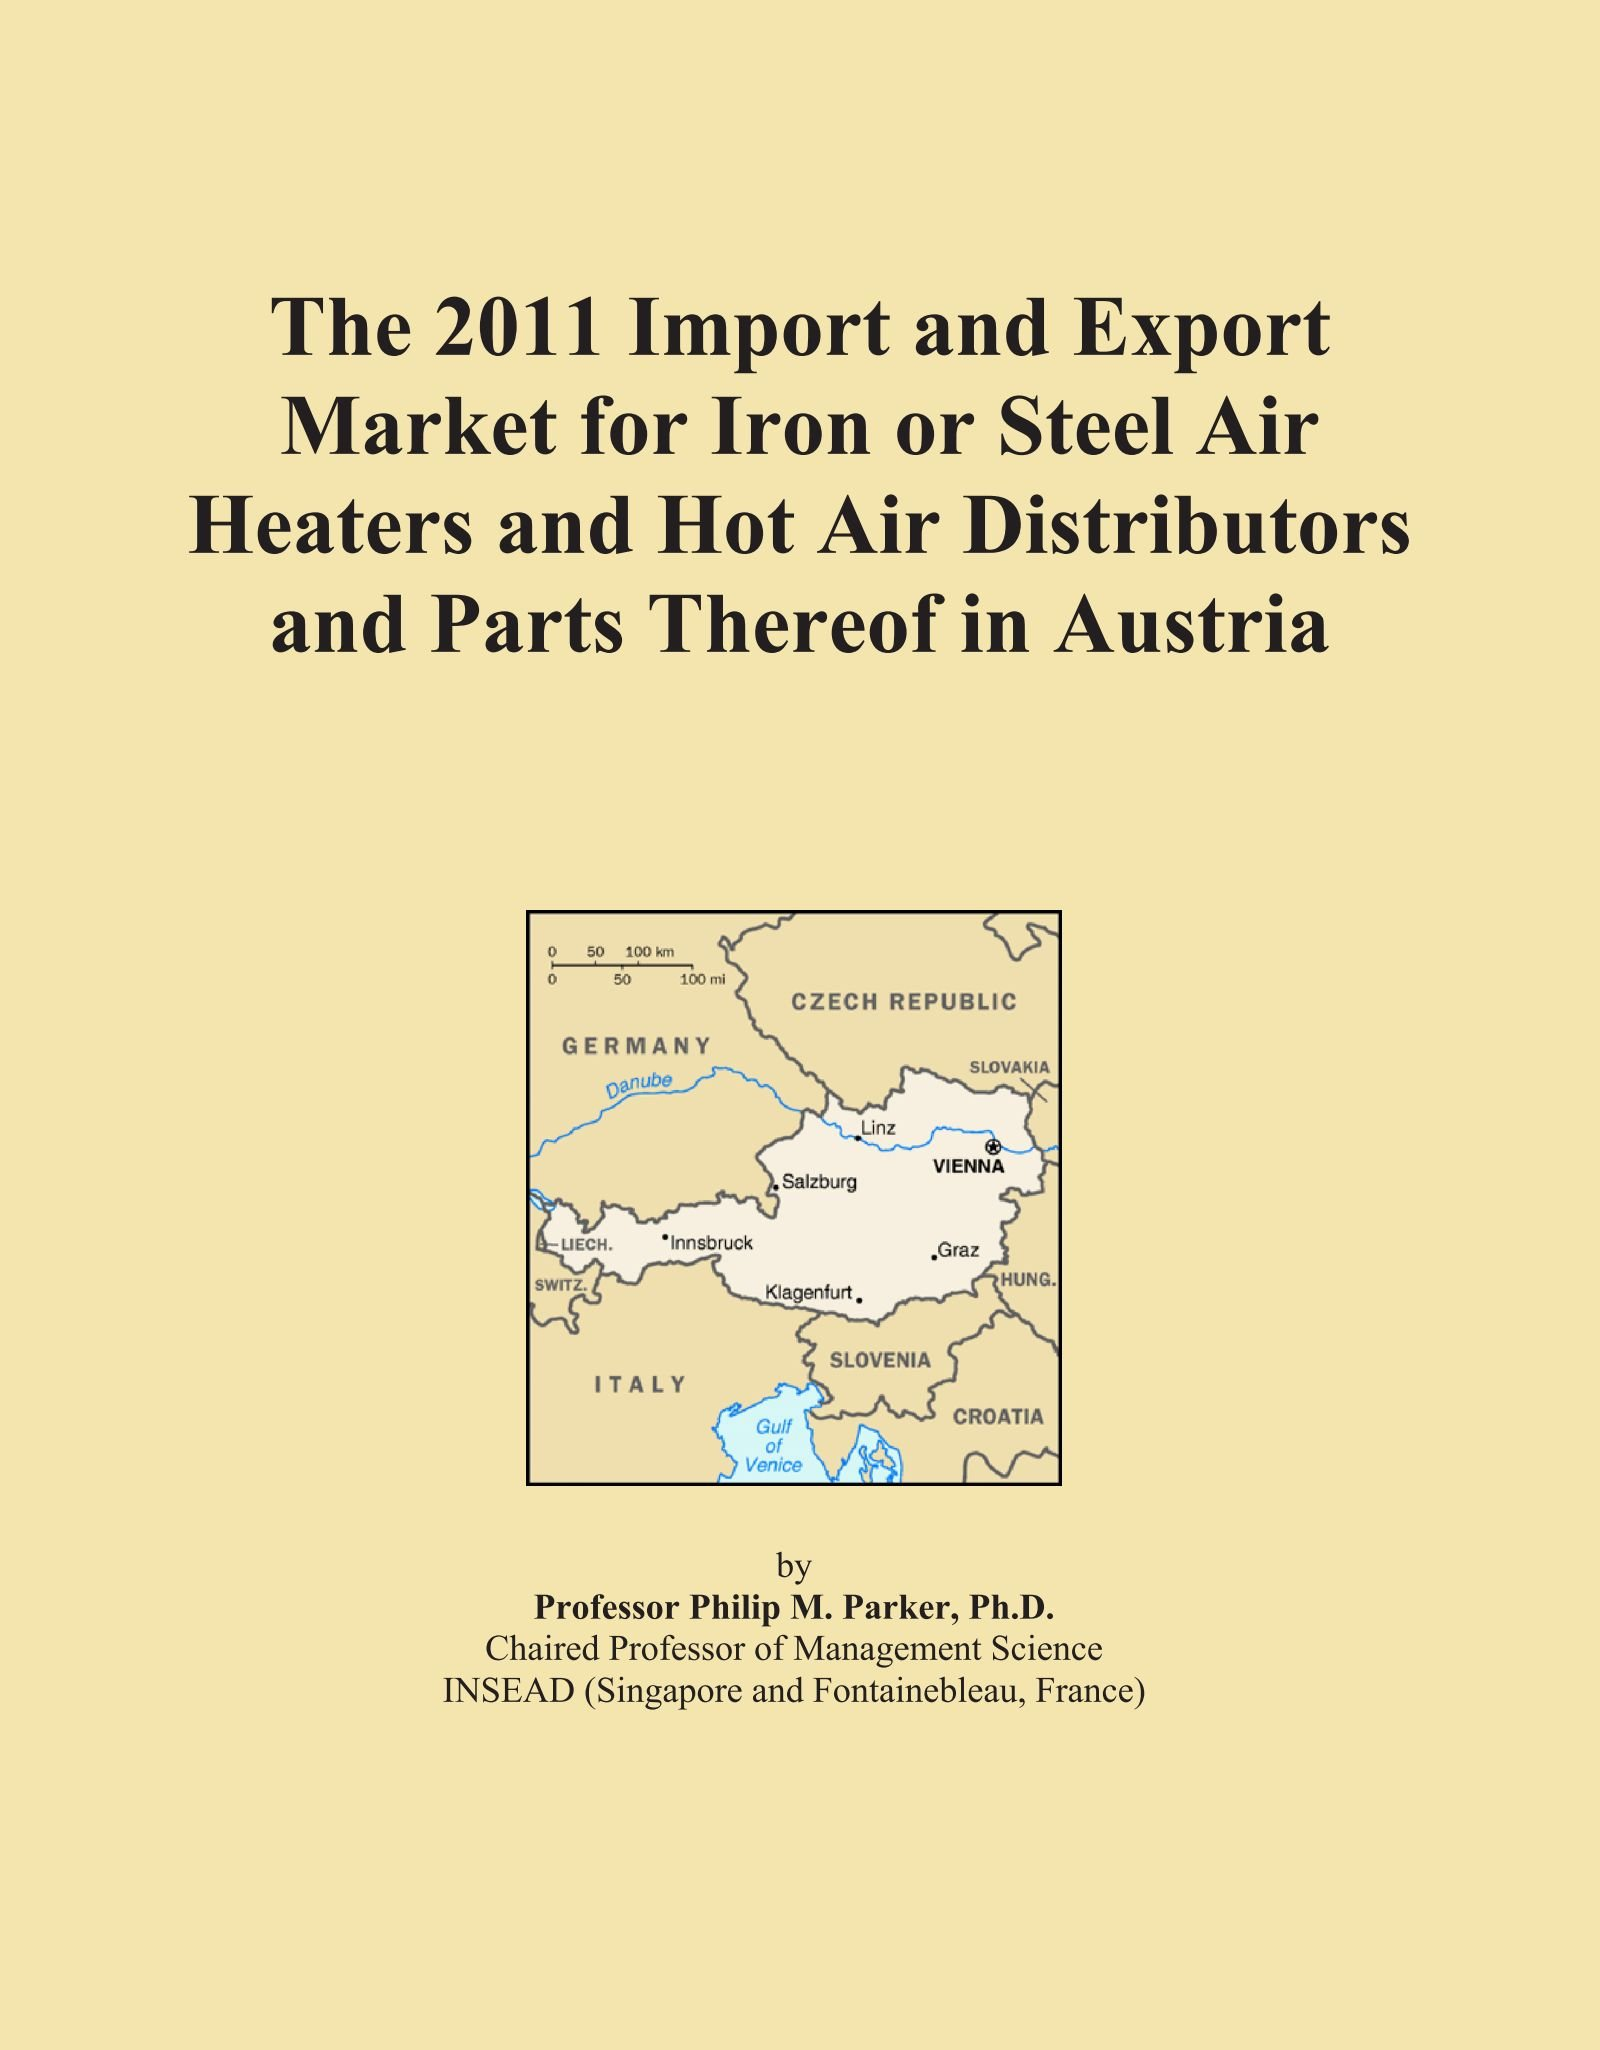 The 2011 Import and Export Market for Iron or Steel Air Heaters and Hot Air Distributors and Parts Thereof in Austria PDF